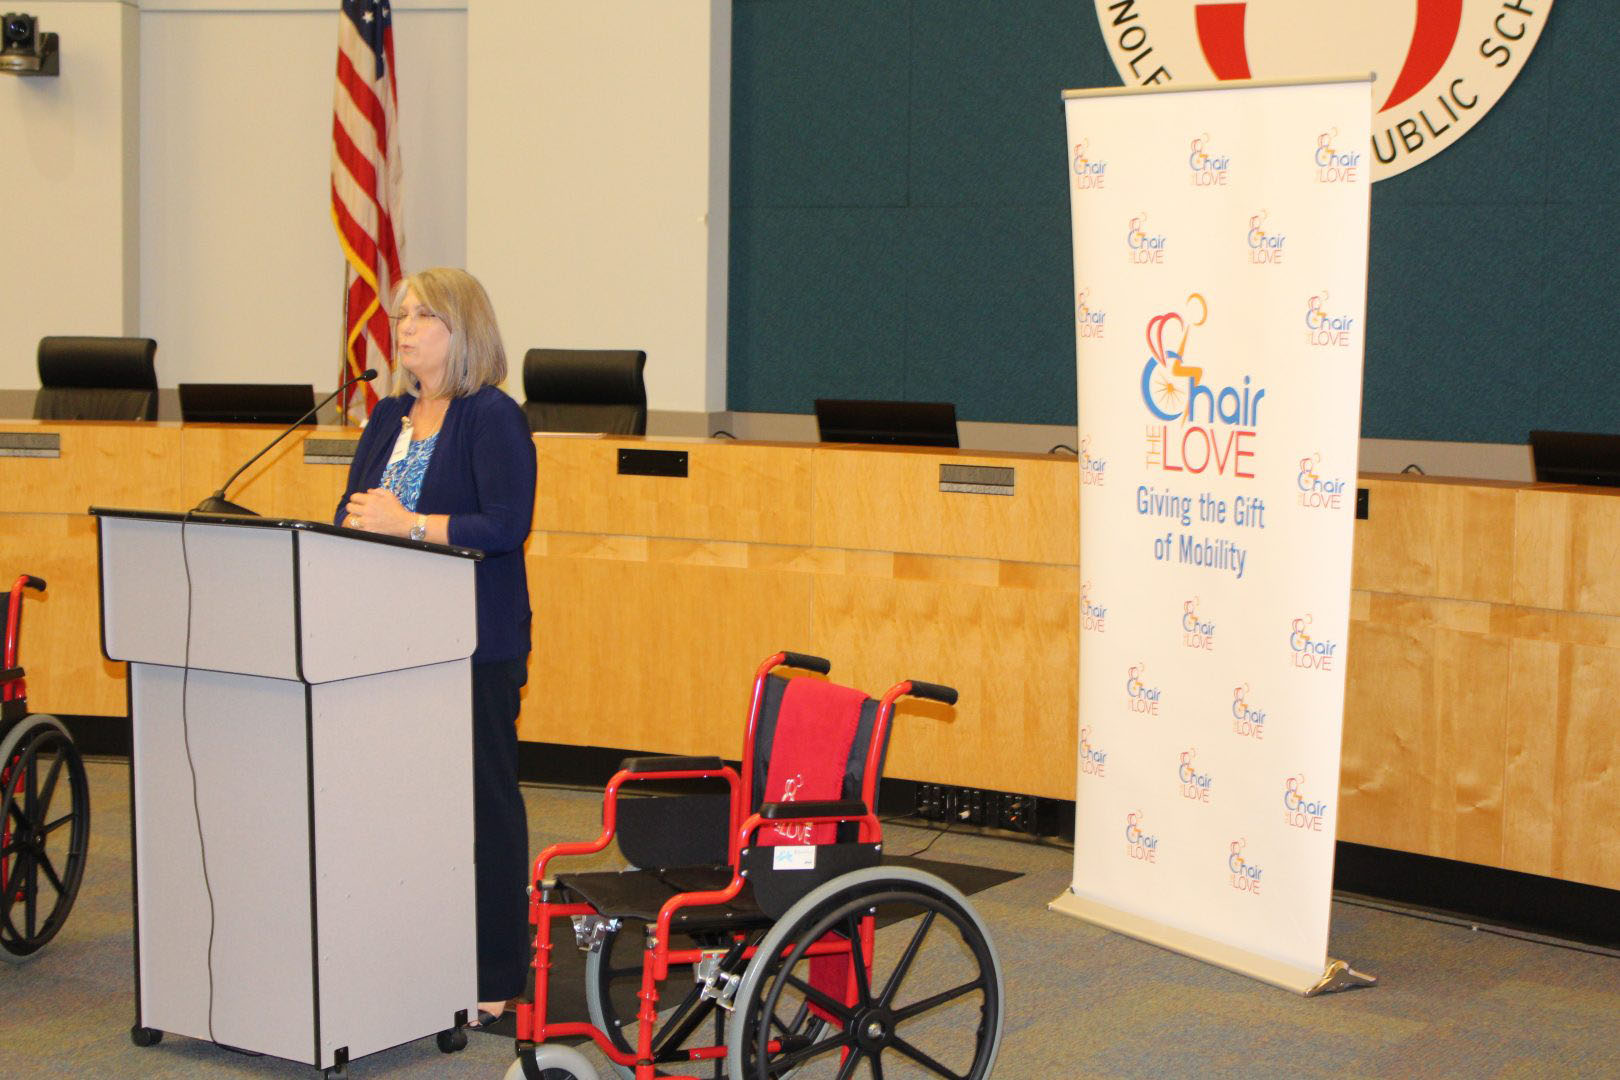 announcement about gifted wheelchairs at a school